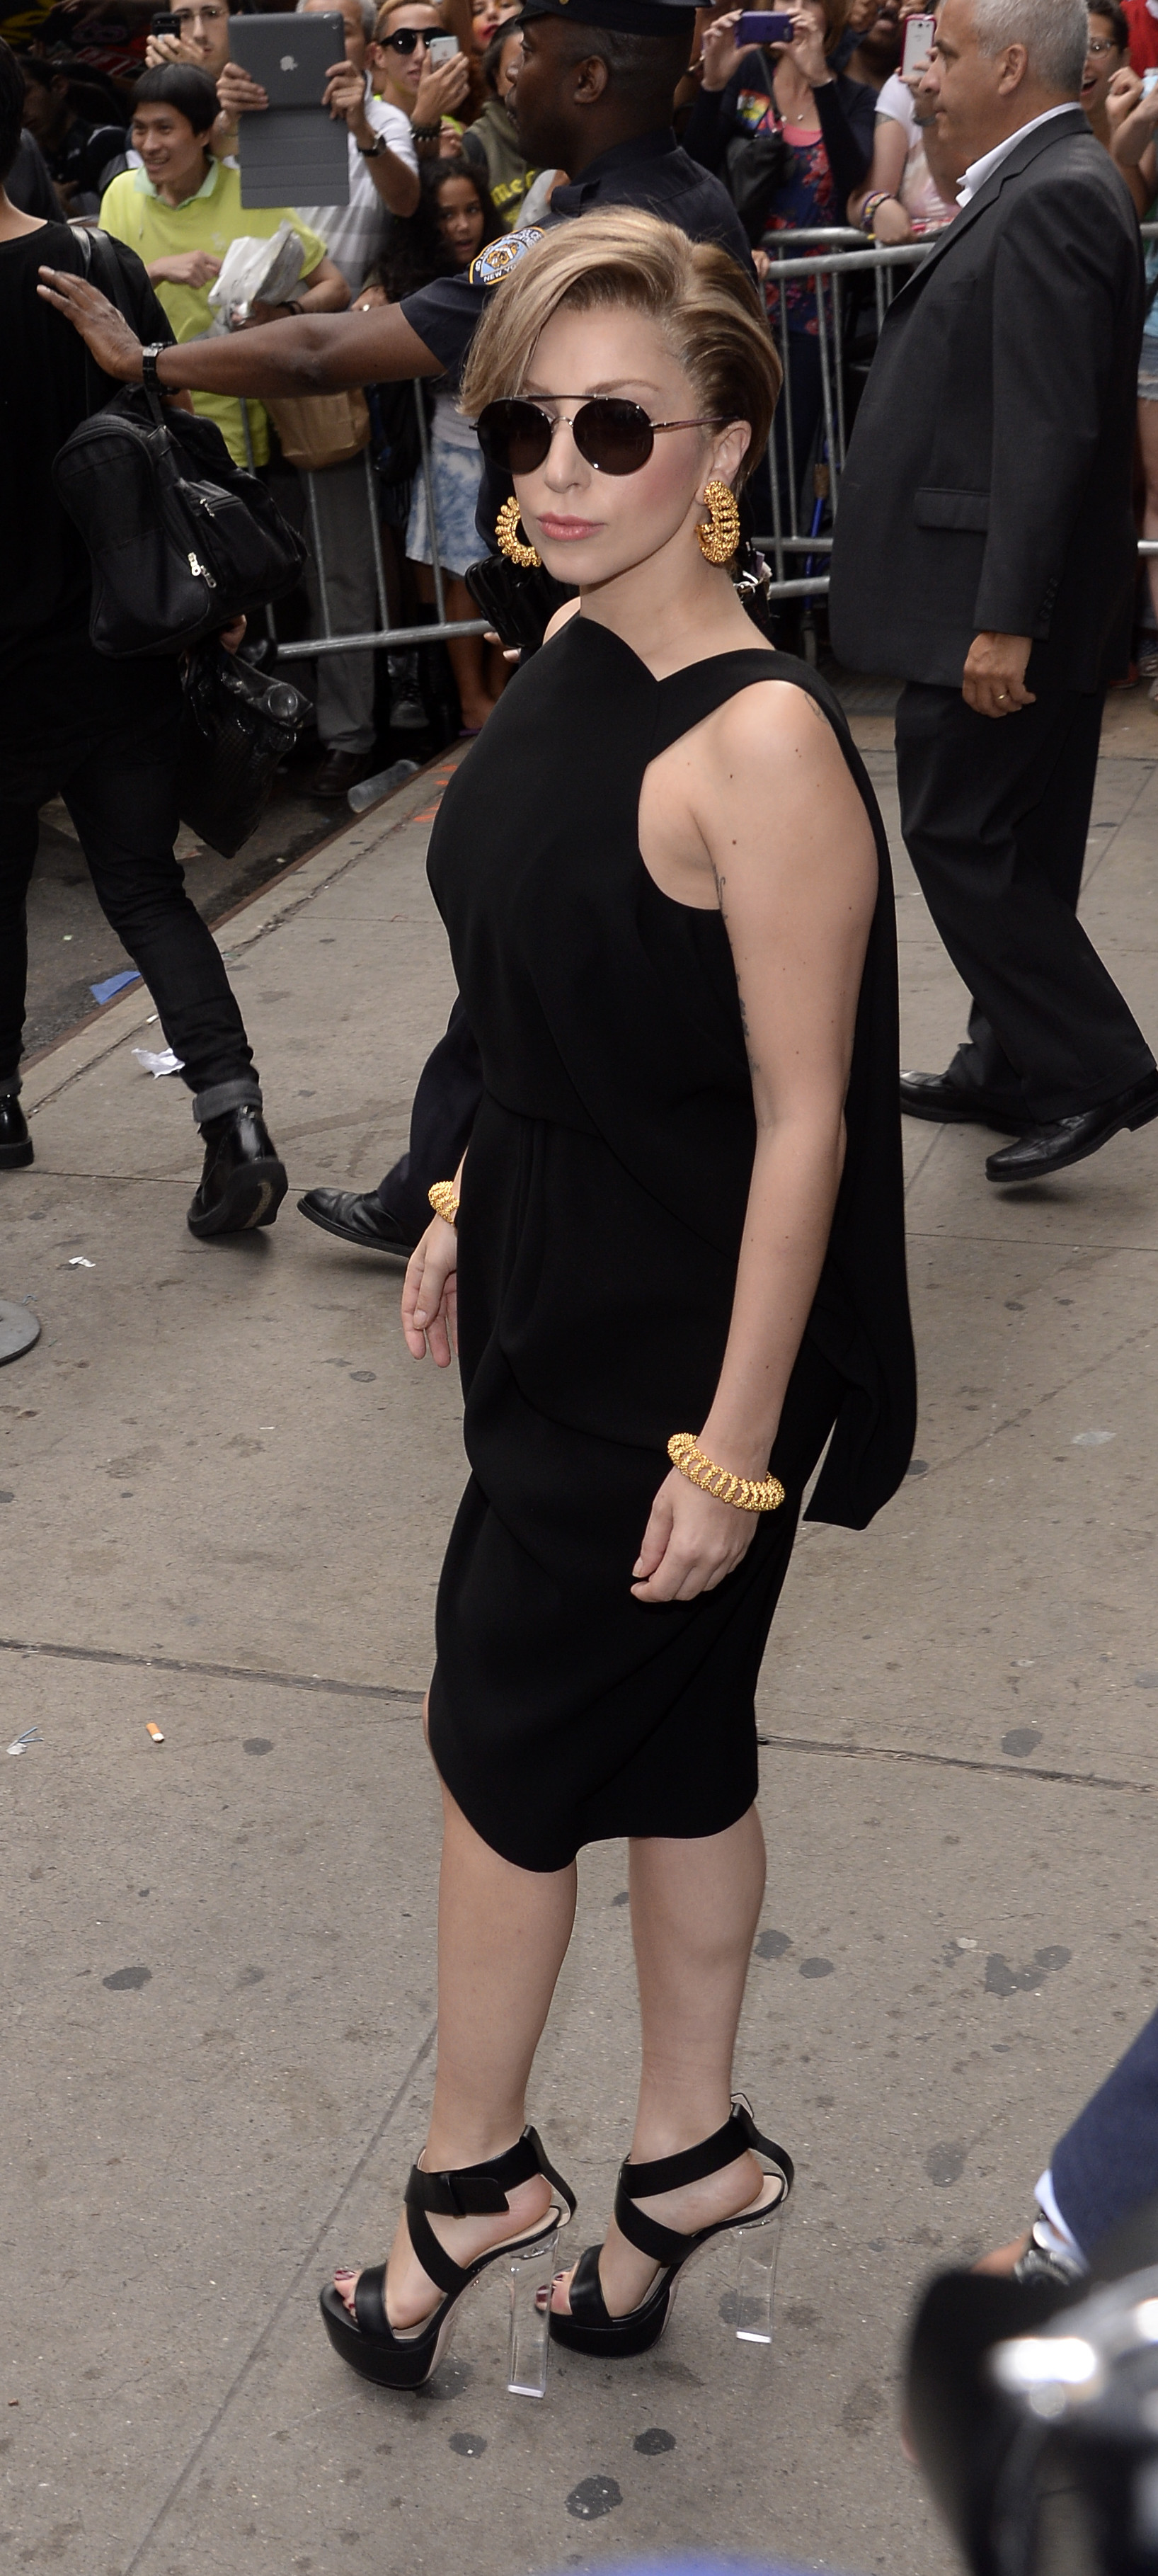 Lady Gaga - Ruthie Davis - New York - 2013.jpg